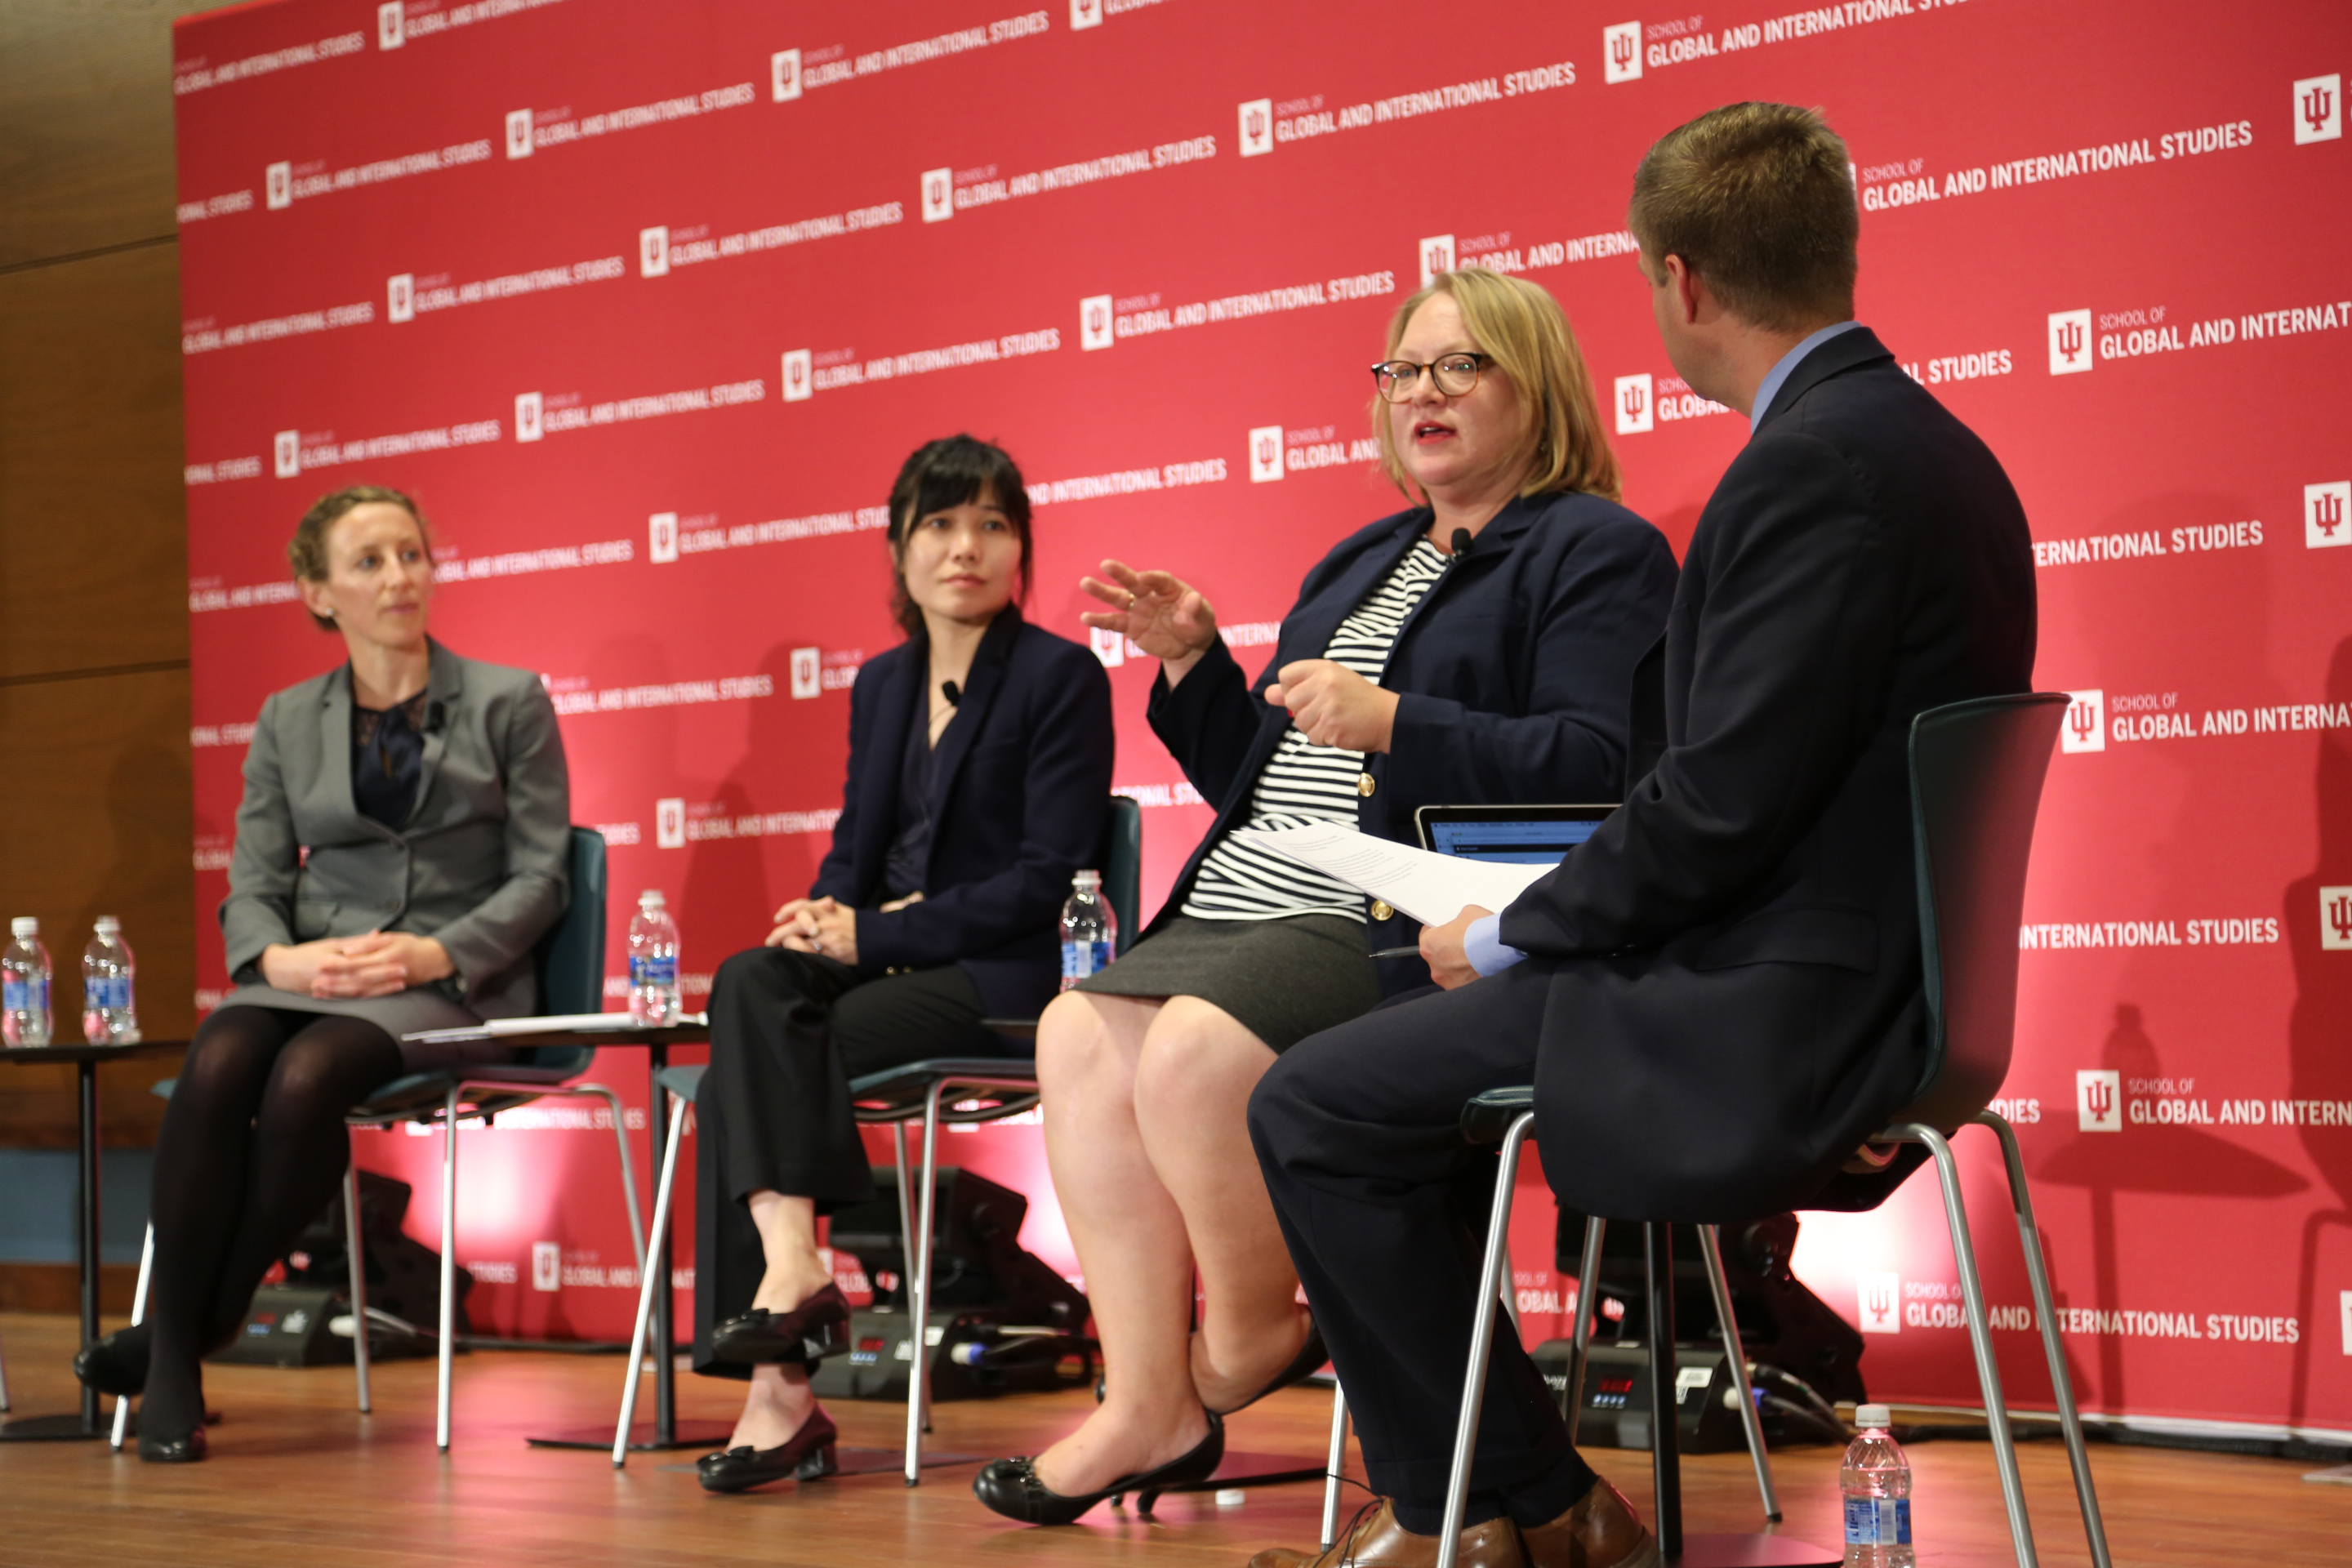 Four SGIS instructors spoke on a panel discussing foreign policy issues.